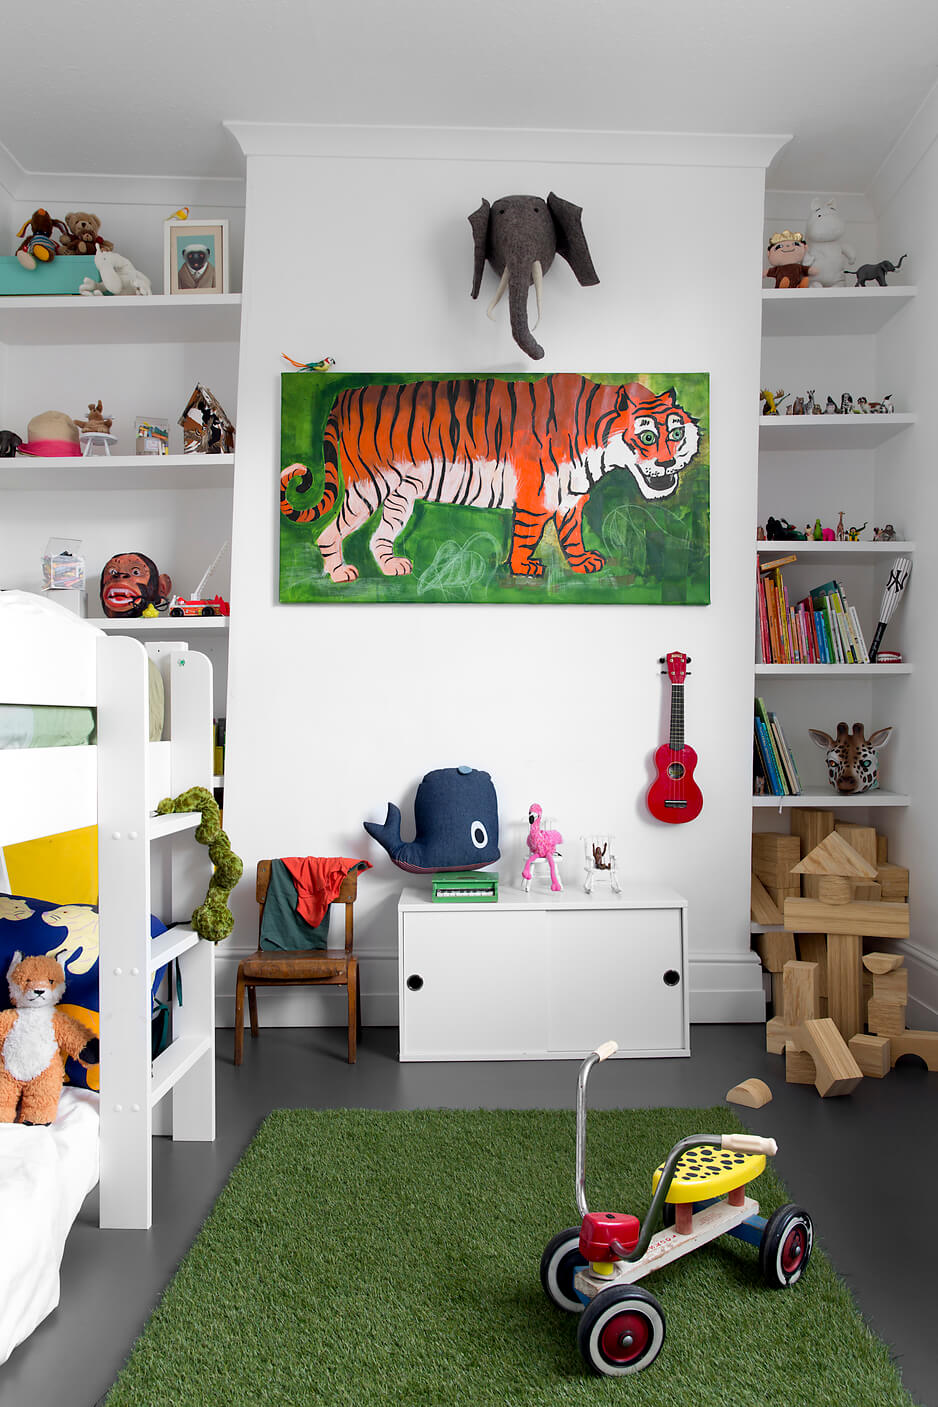 shared children's bedroom